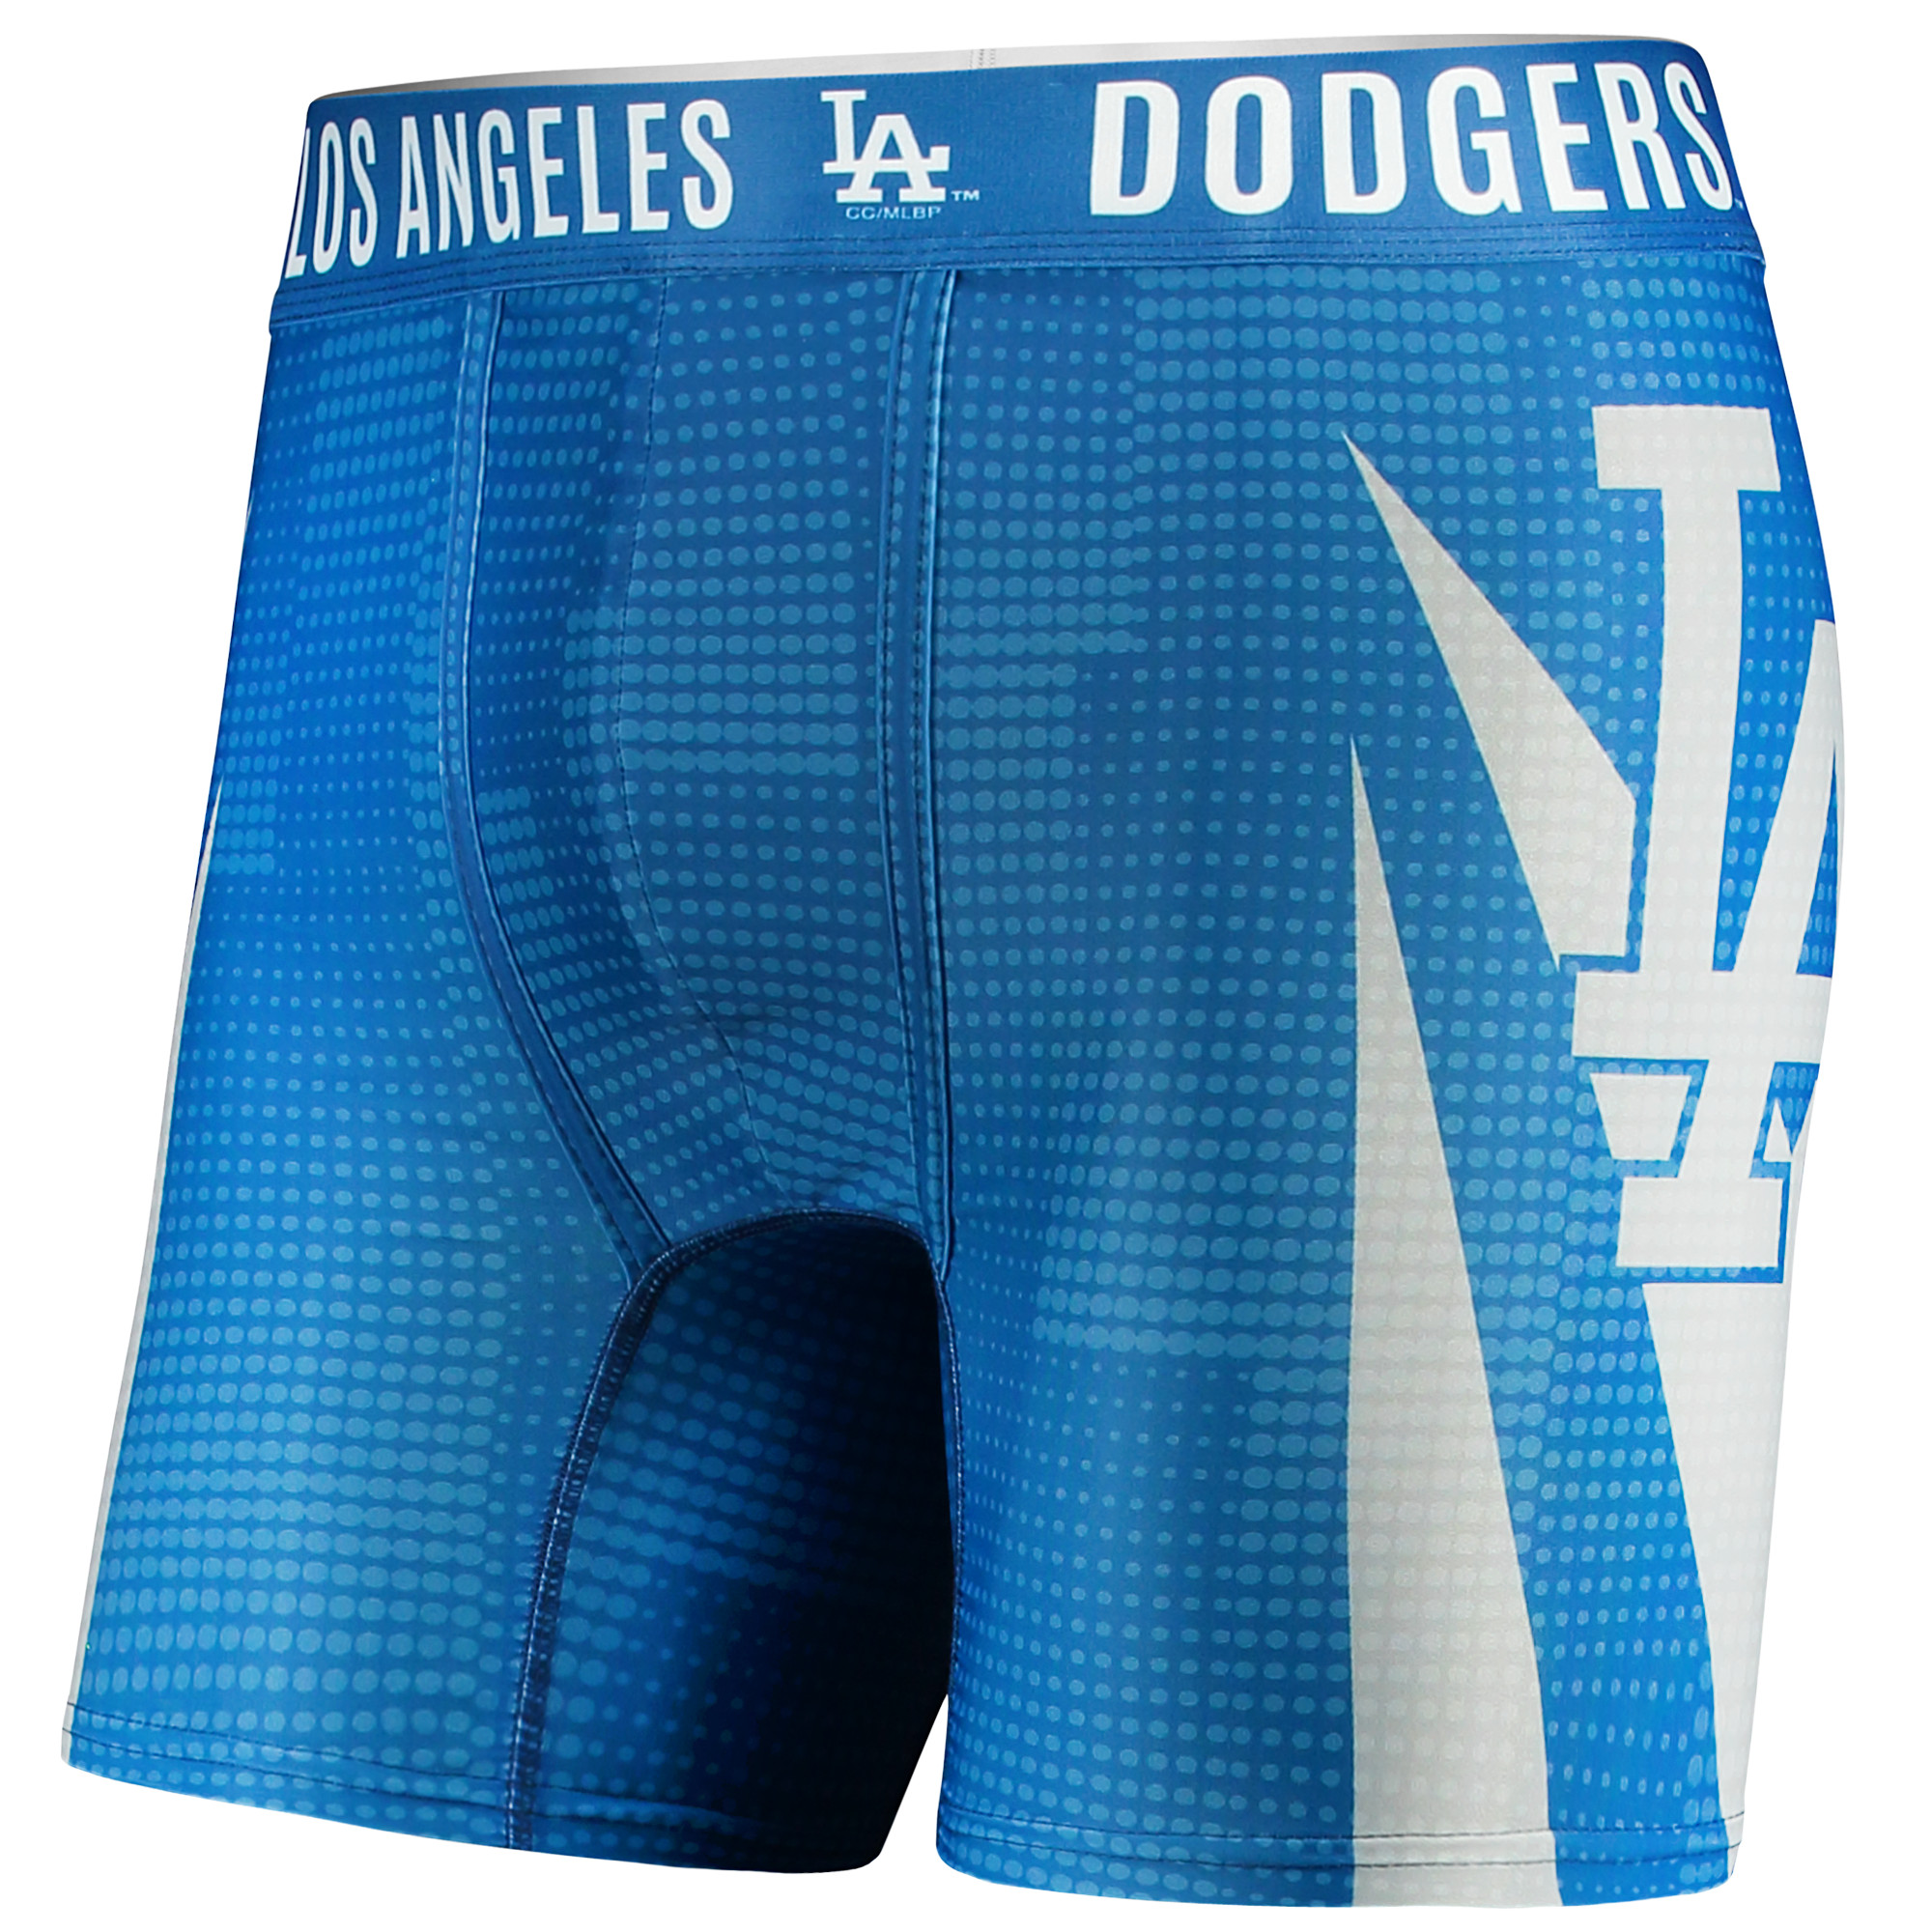 Los Angeles Dodgers Concepts Sport Infuse Boxer Shorts - Royal